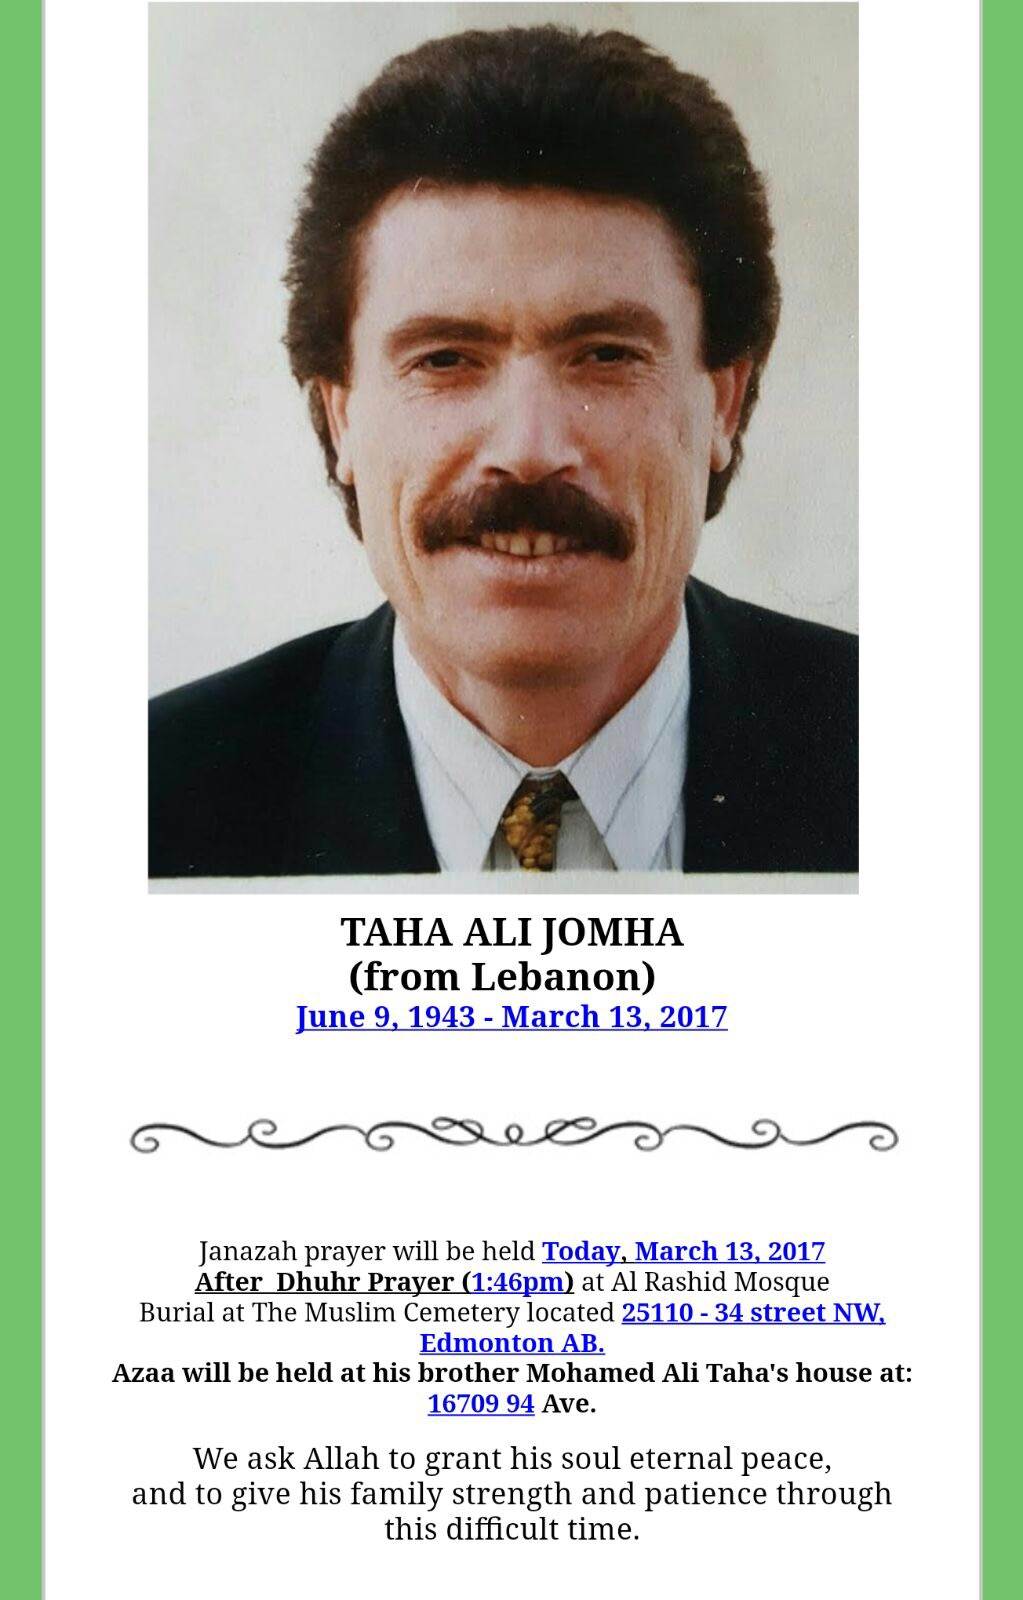 Taha Ali Jomha by Giants in Edmonton AB